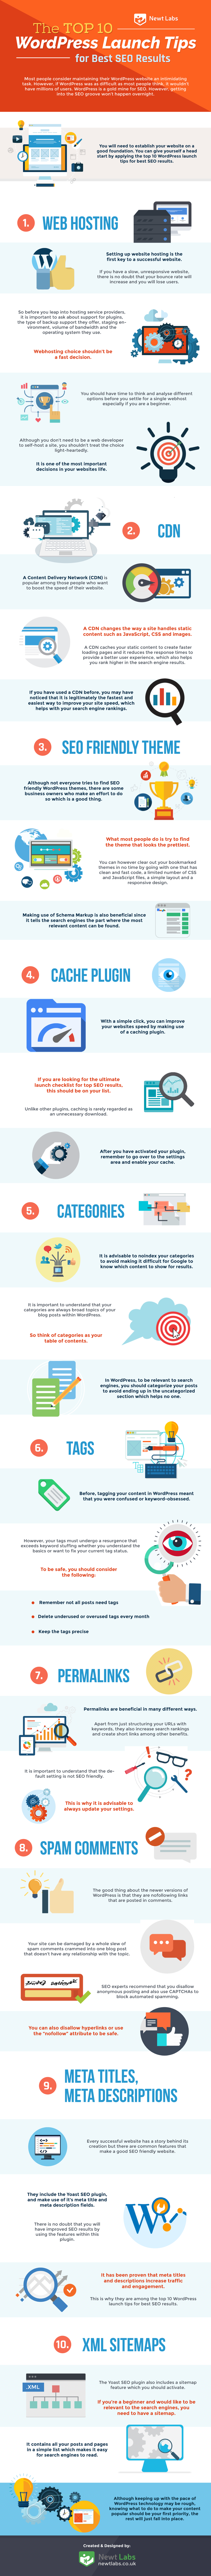 the top 10 wordpress launch tips for best seo results infographic